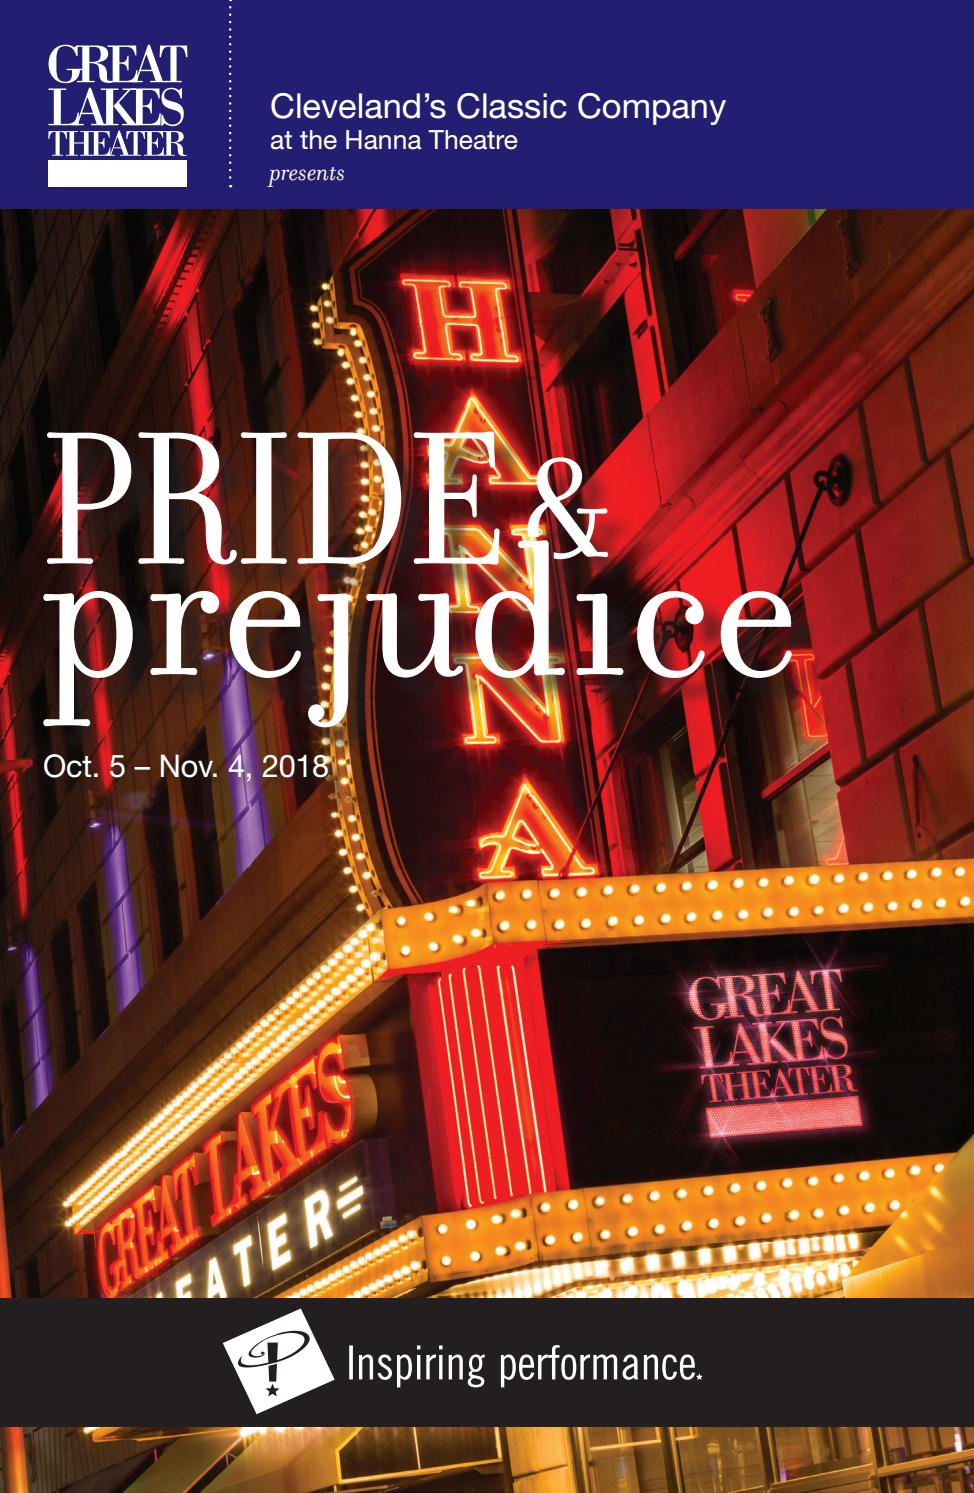 Amber Boddy Whipping pride and prejudice playbill - fall 2018great lakes